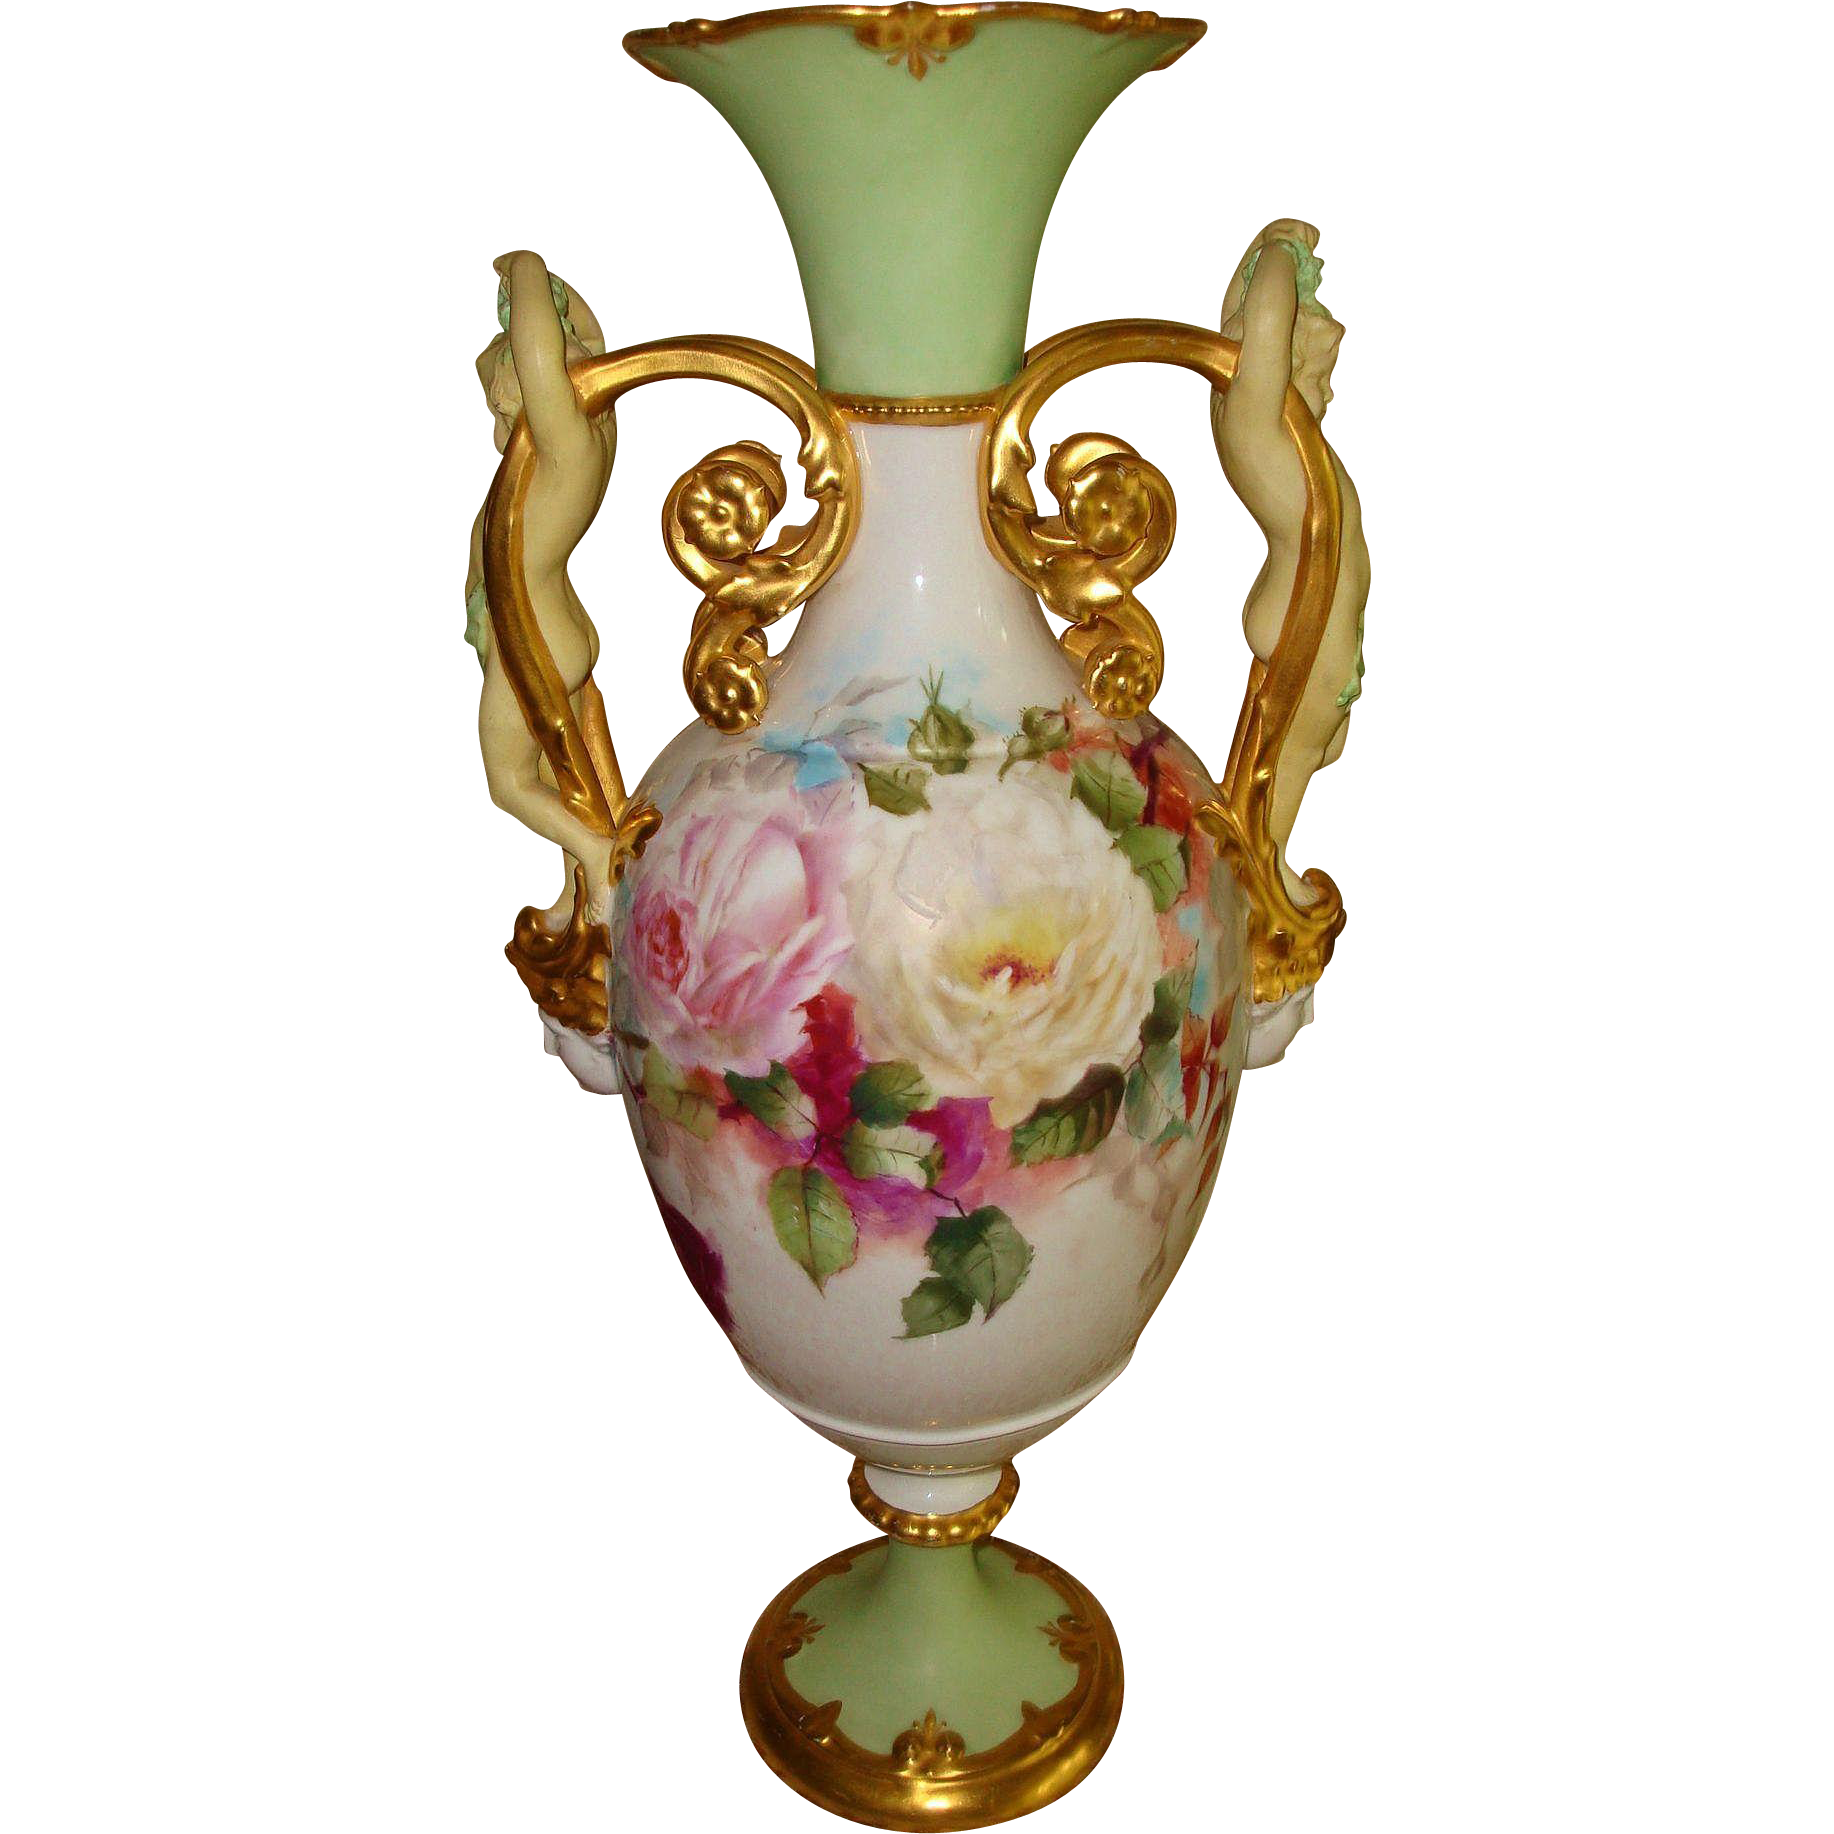 "Museum Quality Antique Royal Vienna Hand Painted Porcelain 21 3/4"" tall  Vase Urn Gorgeous Cherub and Gold Handles Beautiful Roses Artist Signed dated 1896"